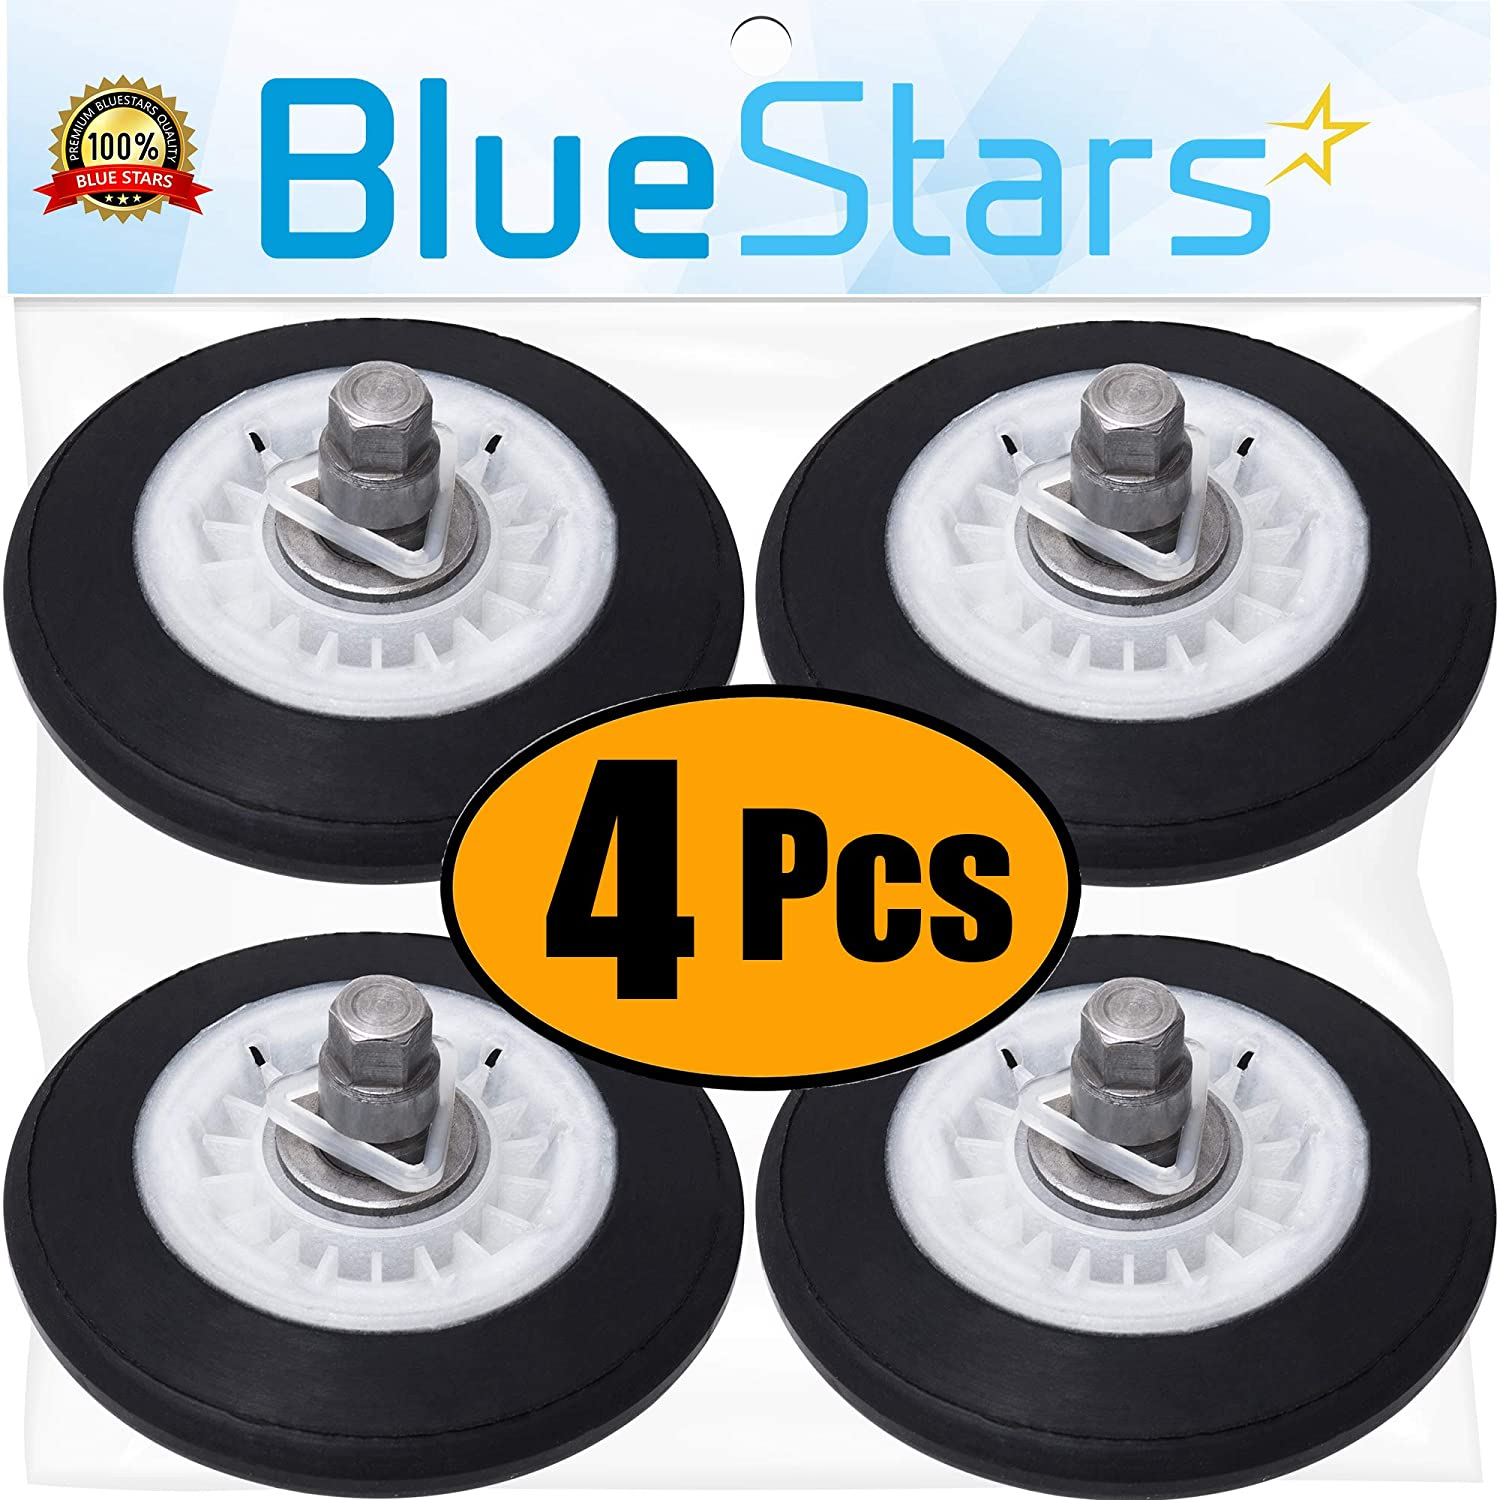 Ultra Durable 4581EL2002C Dryer Drum Roller Assembly Replacement Part by Blue Stars - Exact Fit for LG Kenmore Dryers - Replaces 4581EL2002A 4581EL2002B 4581EL2002D - PACK OF 4